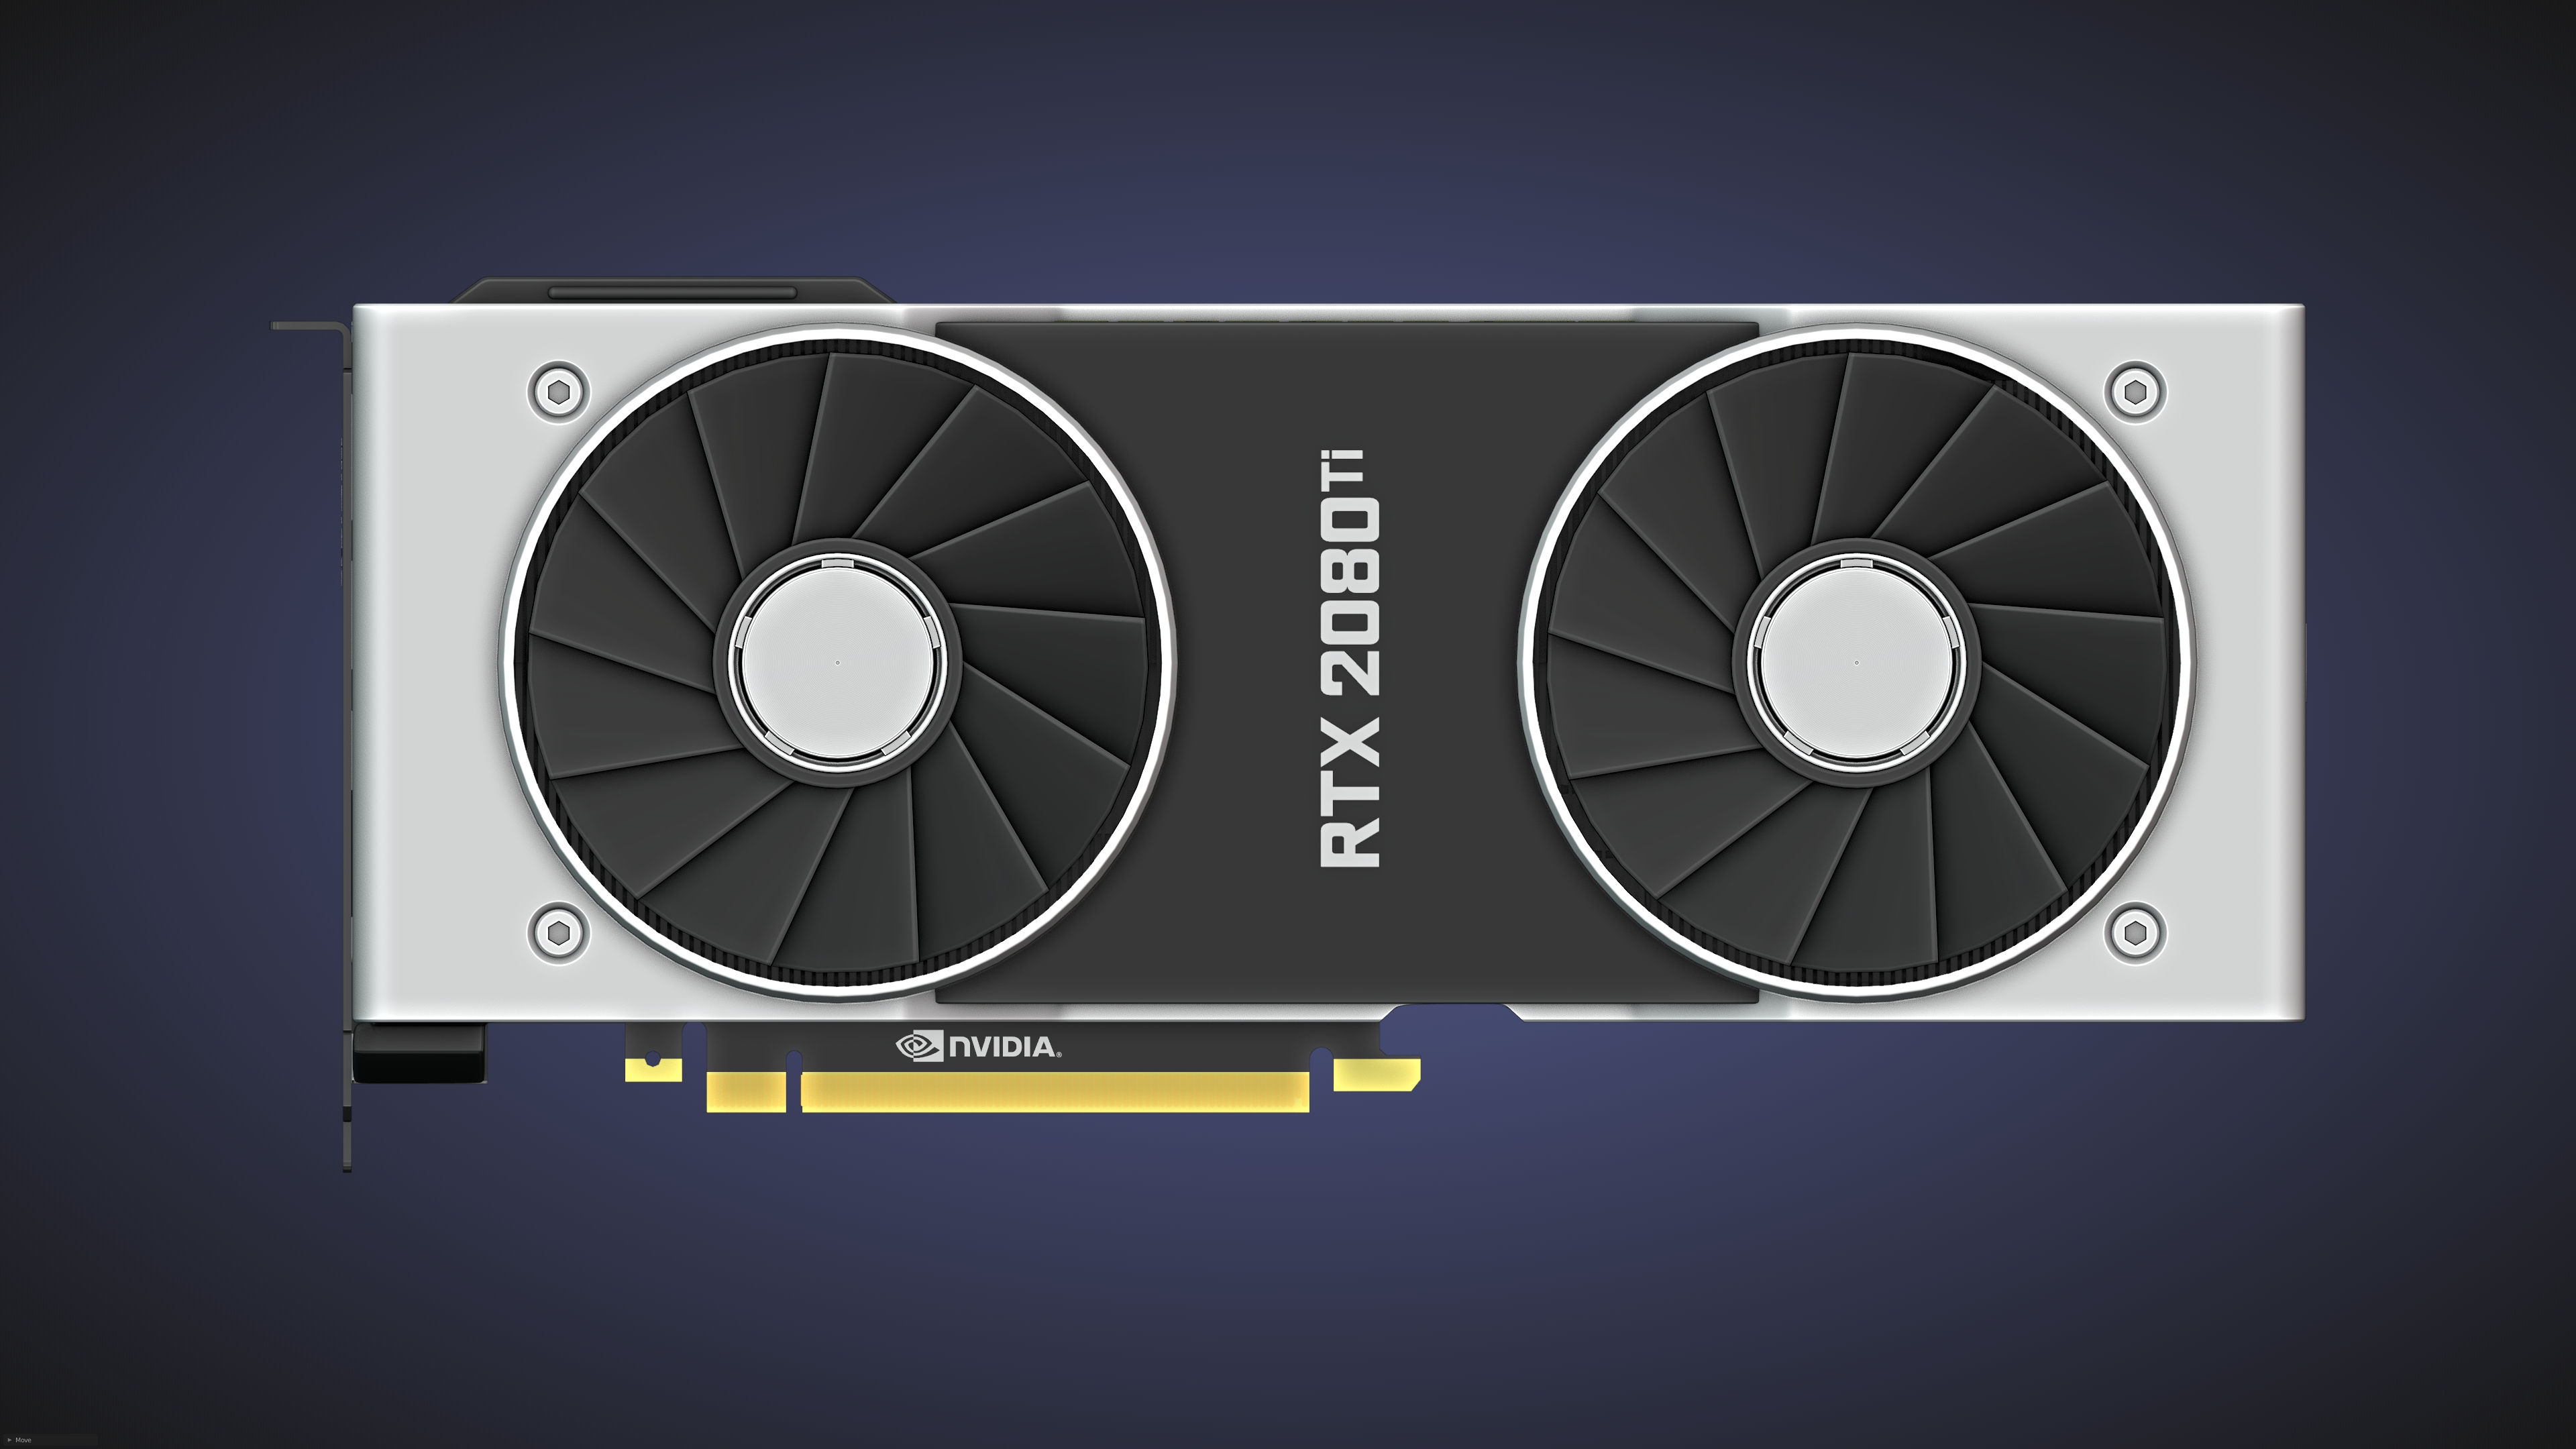 NVIDIA Geforce RTX 2080TI preview image 1